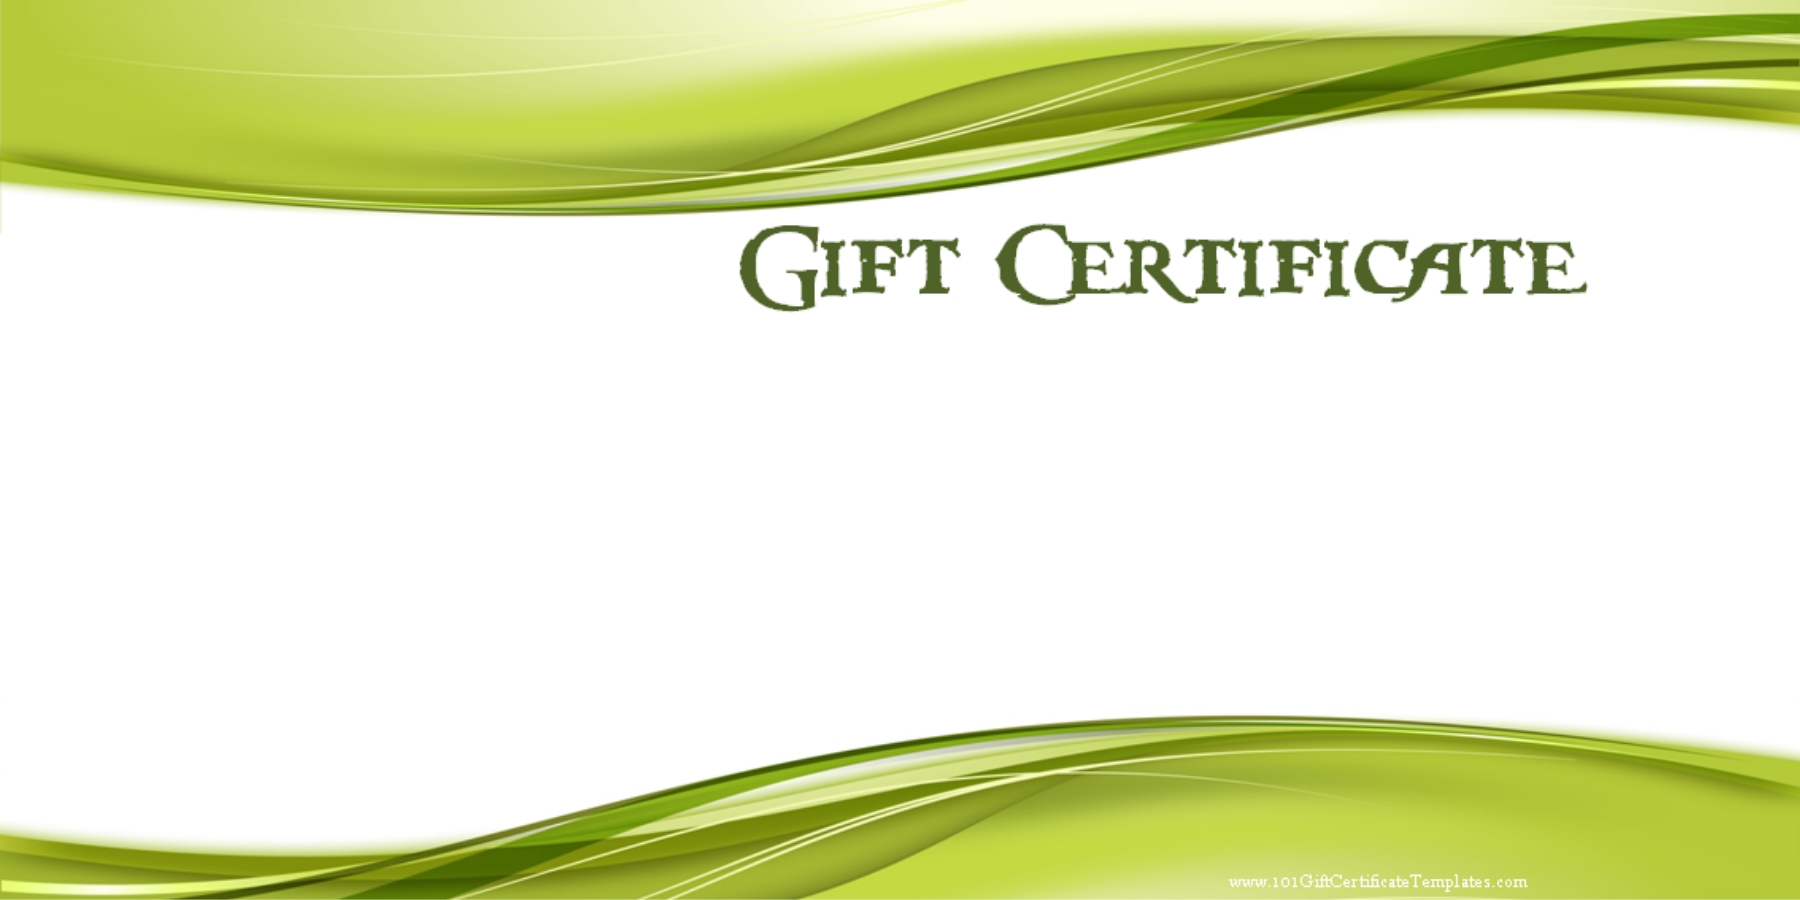 Gift certificate template fotolip rich image and wallpaper gift certificate template yelopaper Gallery